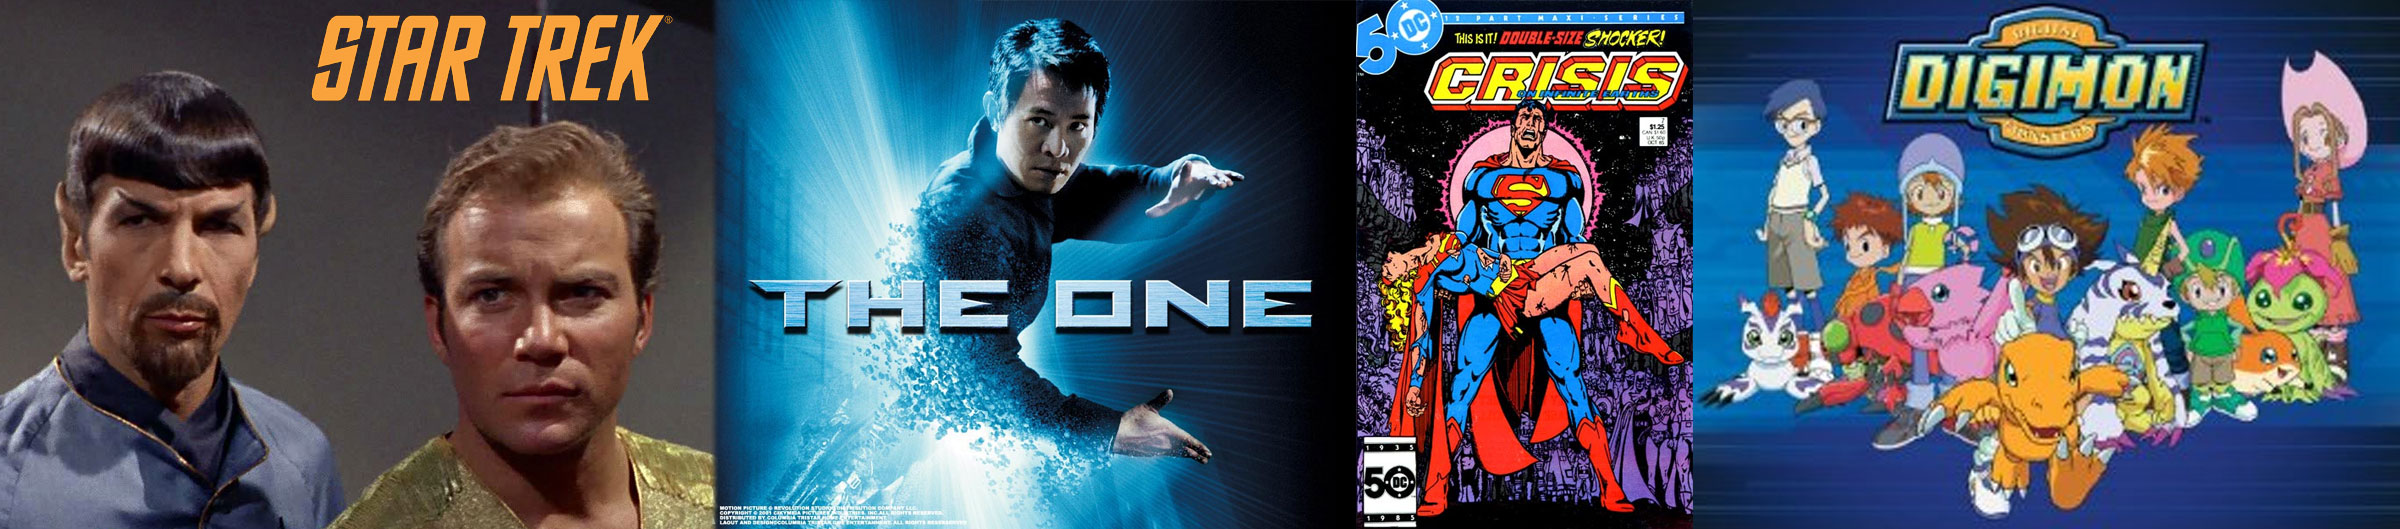 TV: Star Trek, Movies: The One, Comics: Superman & The Crisis On Infinite Earths, Cartoons: Digimon